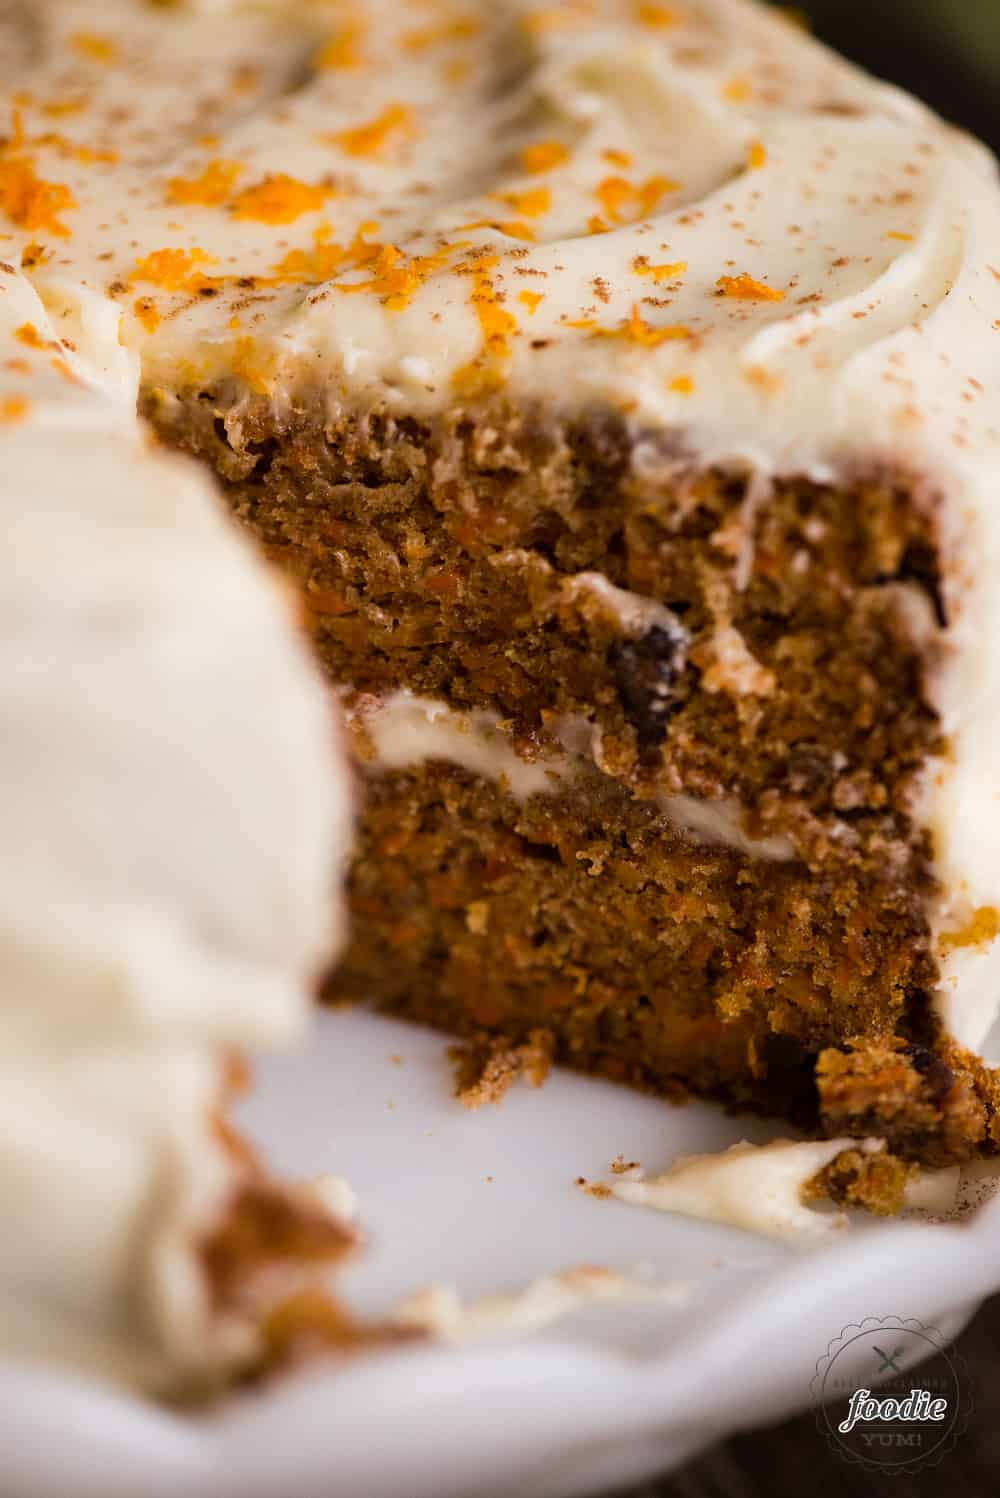 Carrot Cake Not Cooked Middle